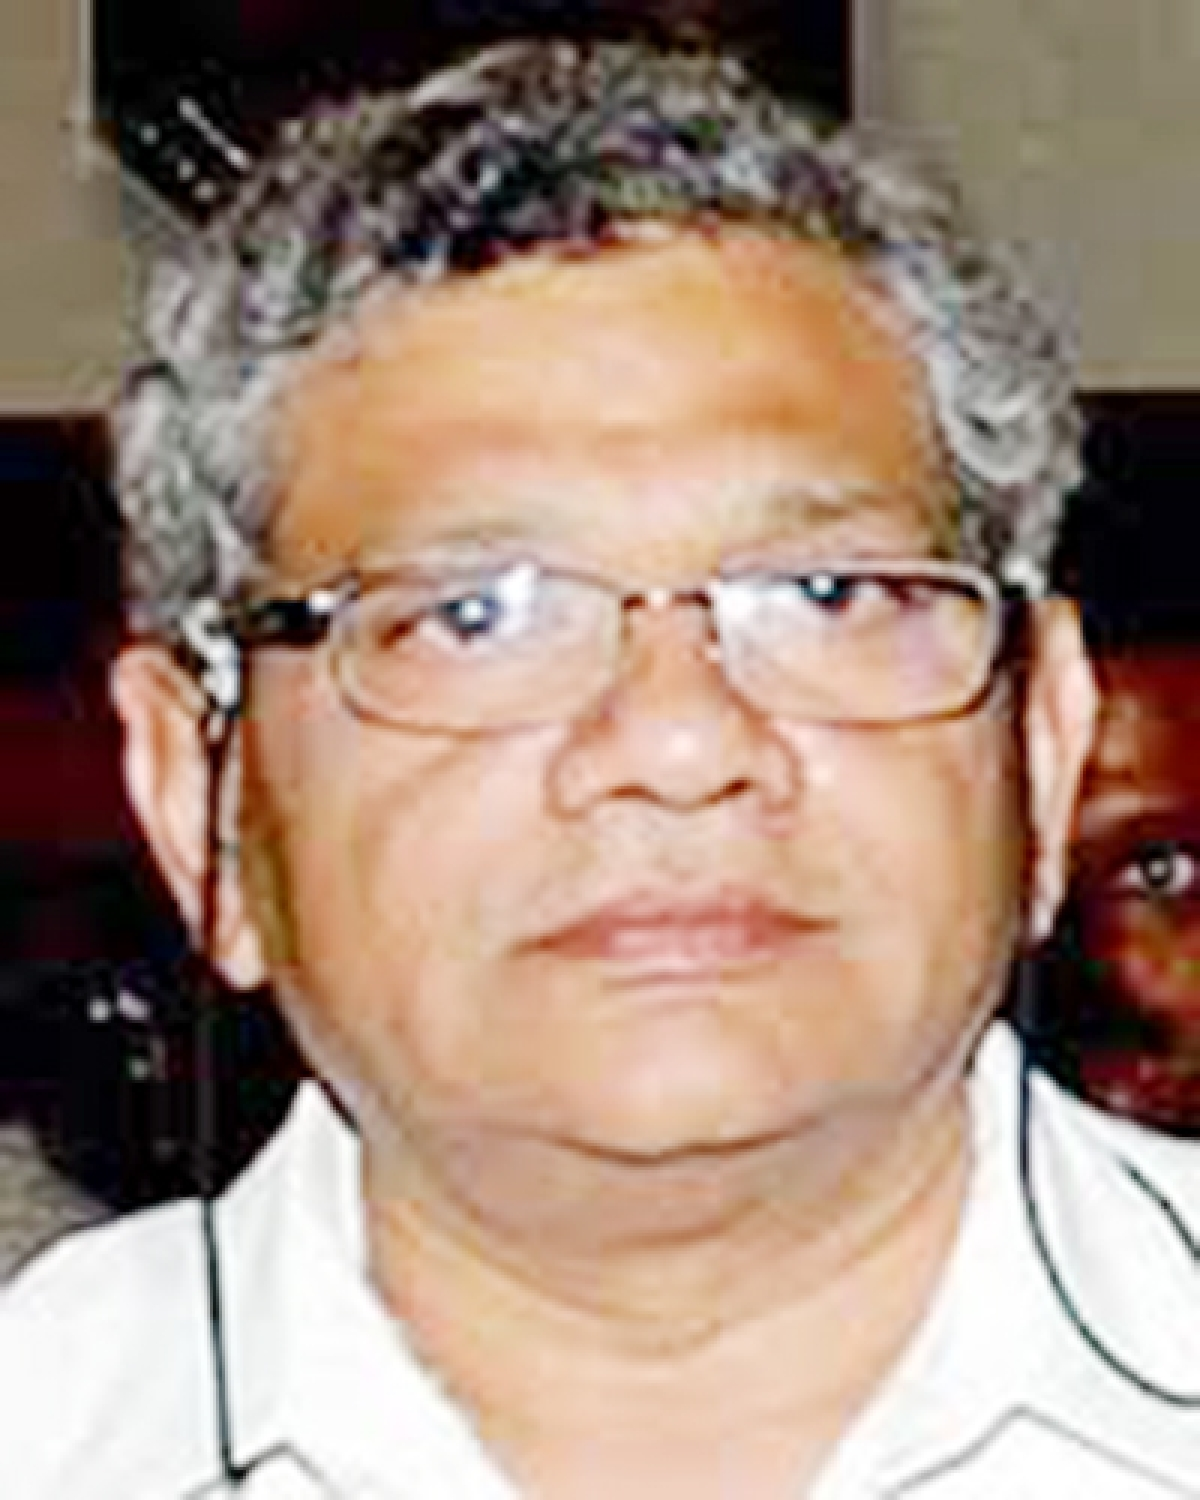 Tie-up with Cong only in Parliament: Sitaram Yechury